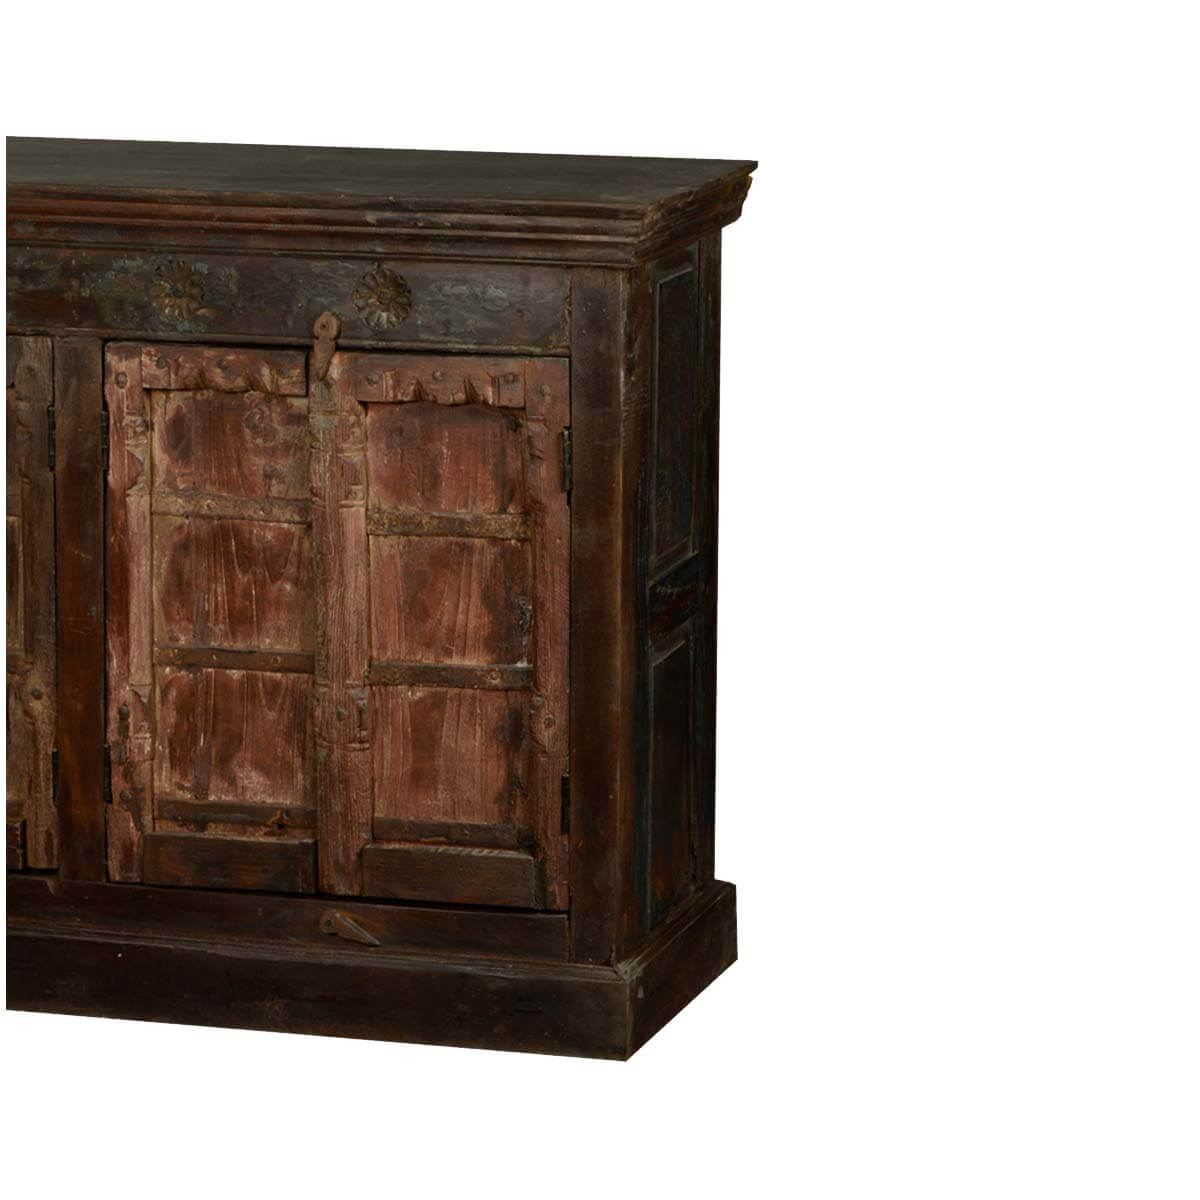 Gothic 4 Door Storage Buffet Cabinet Reclaimed Wood Rustic  : 51034 from sierralivingconcepts.com size 1200 x 1200 jpeg 99kB